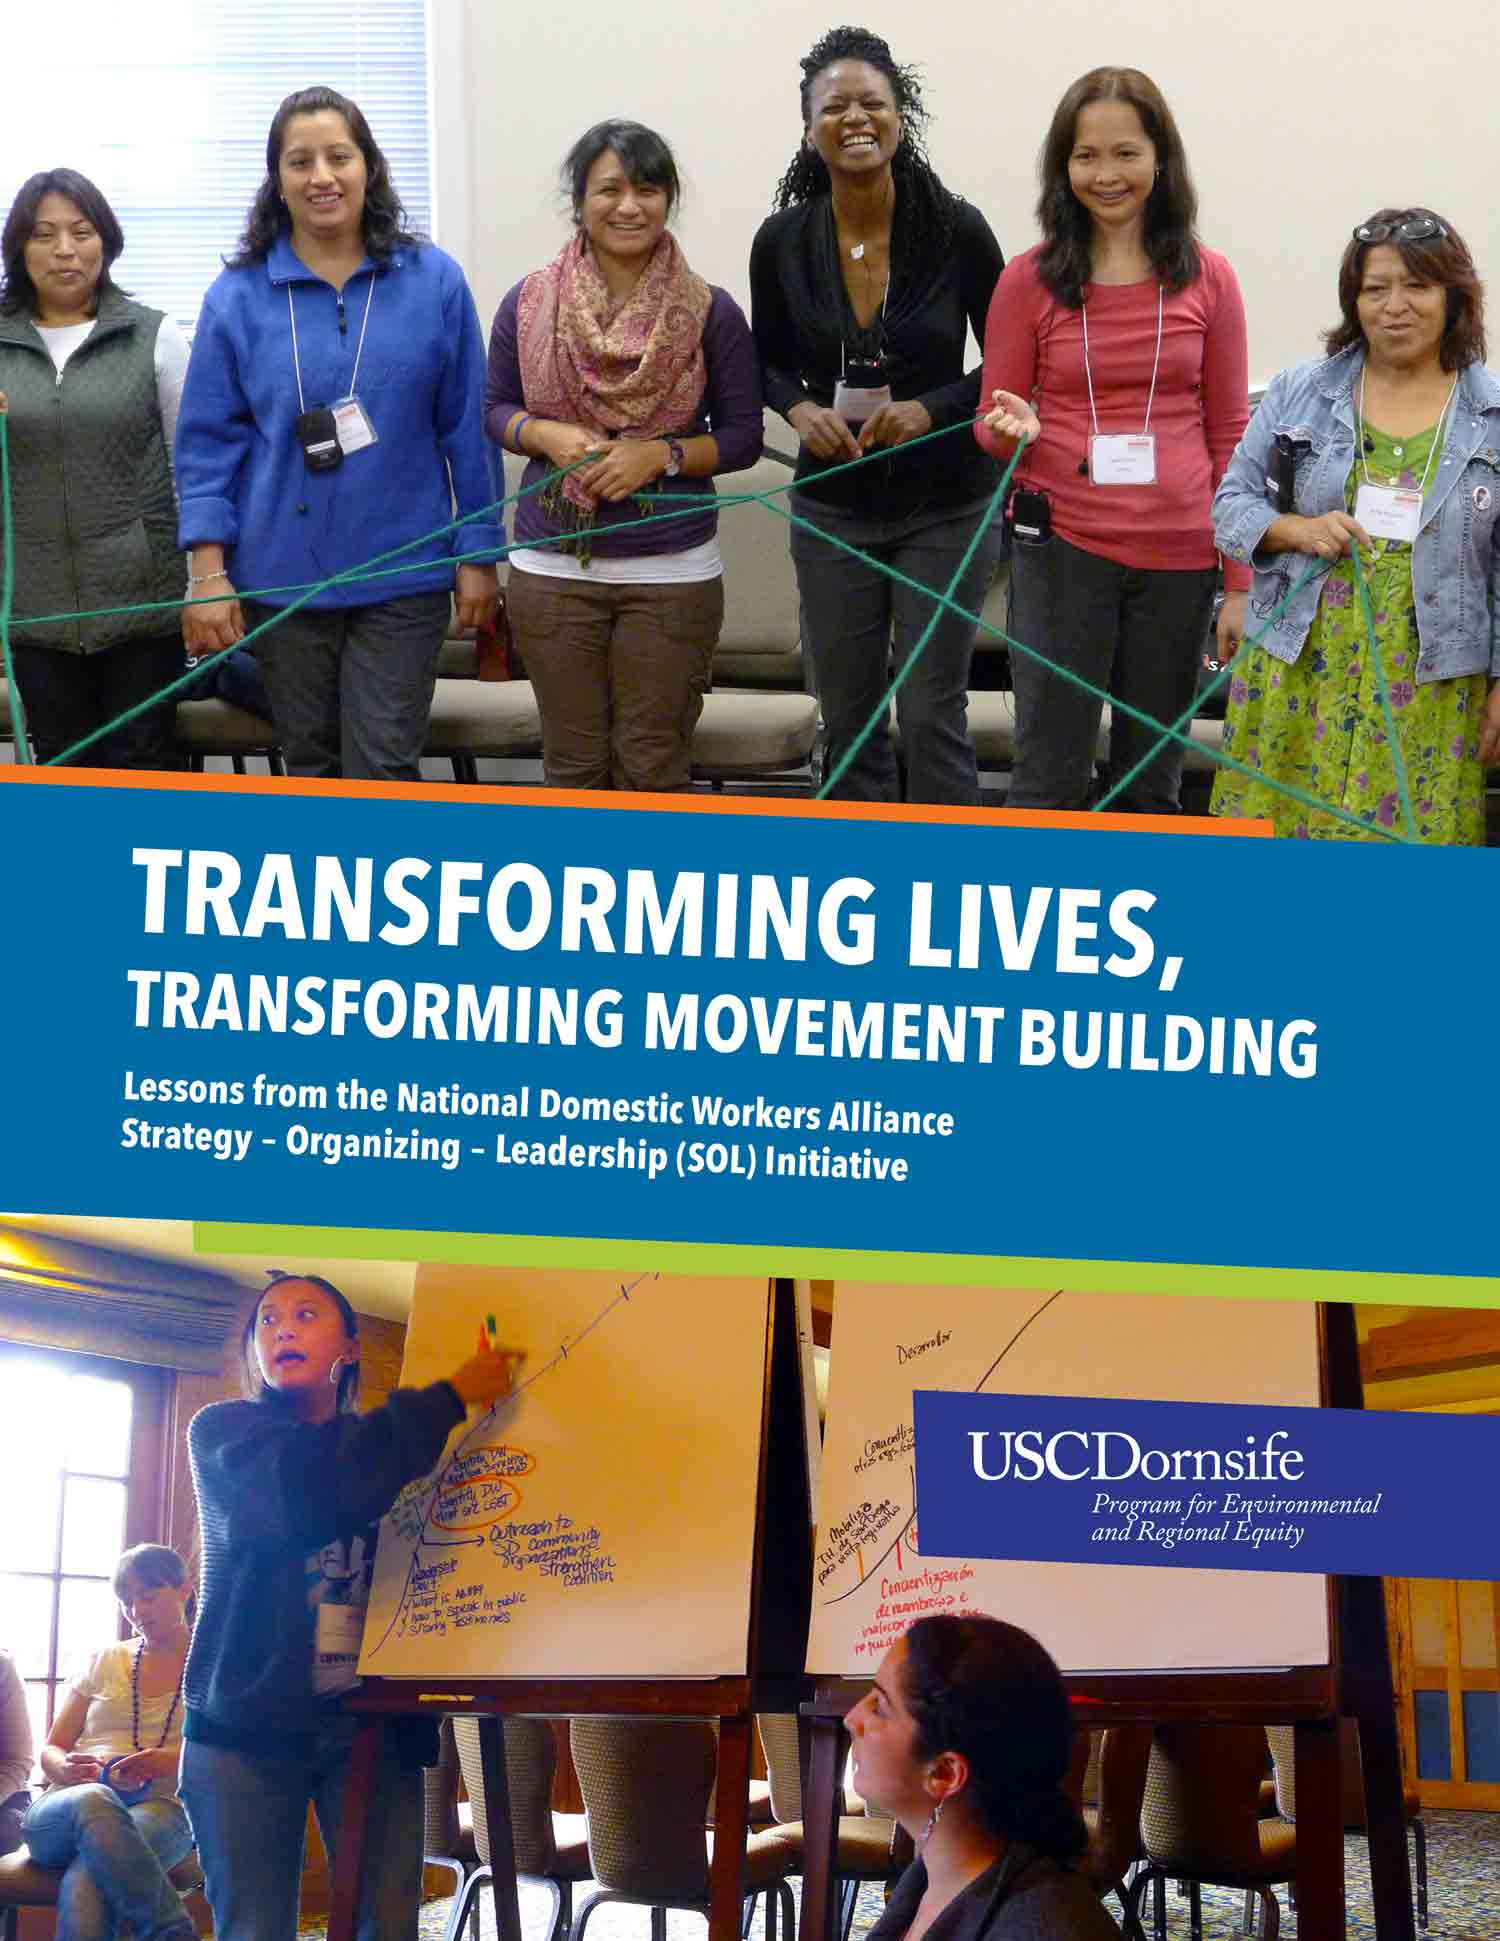 Transforming Lives, Transforming Movement Building: Lessons from the National Domestic Workers Alliance Strategy - Organizing - Leadership (SOL) Initiative